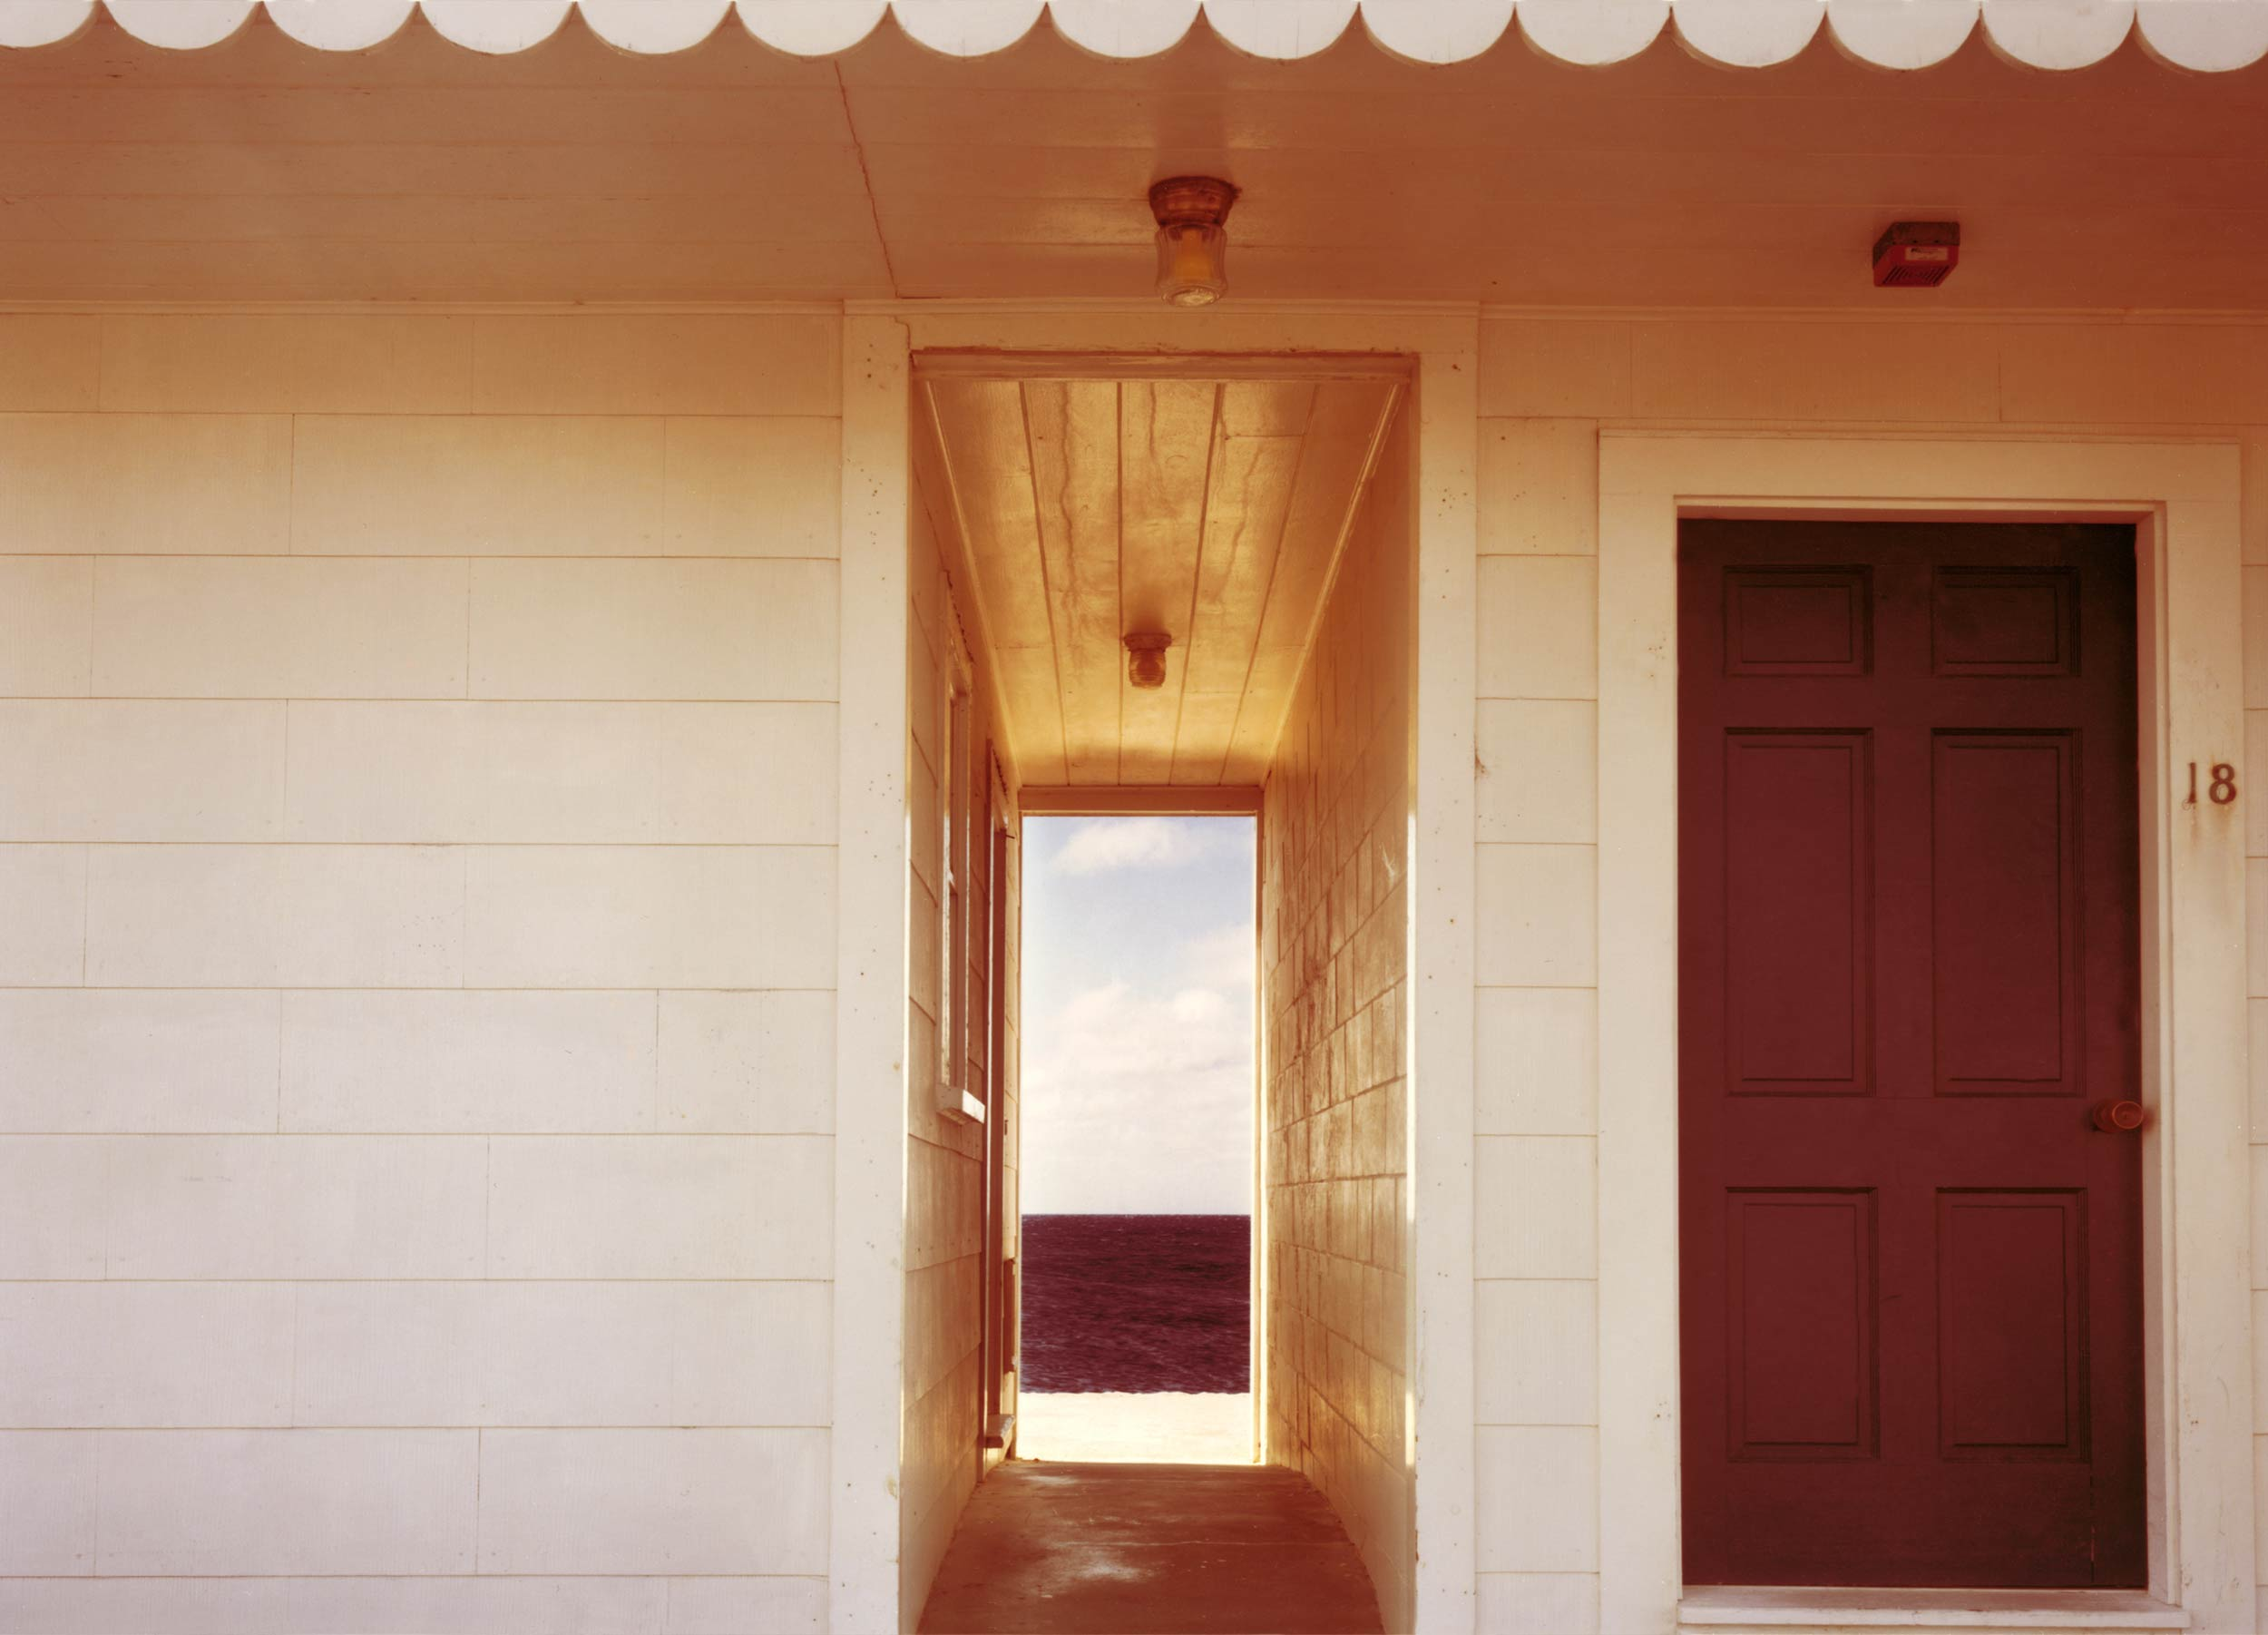 Joel Meyerowitz Doorway to the Sea, Provincetown, 1982